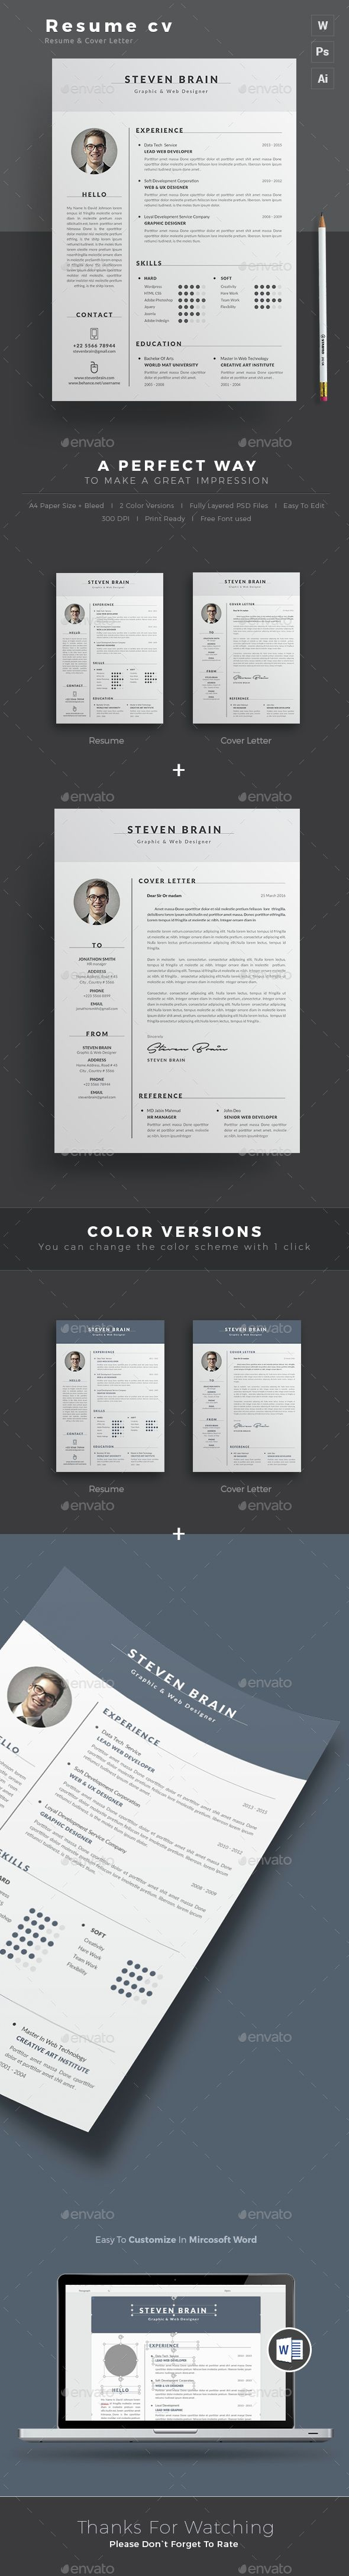 Resume U2022 Available Here → Http://graphicriver.net/item/resume /15438388?s_ranku003d173u0026refu003dpxcr